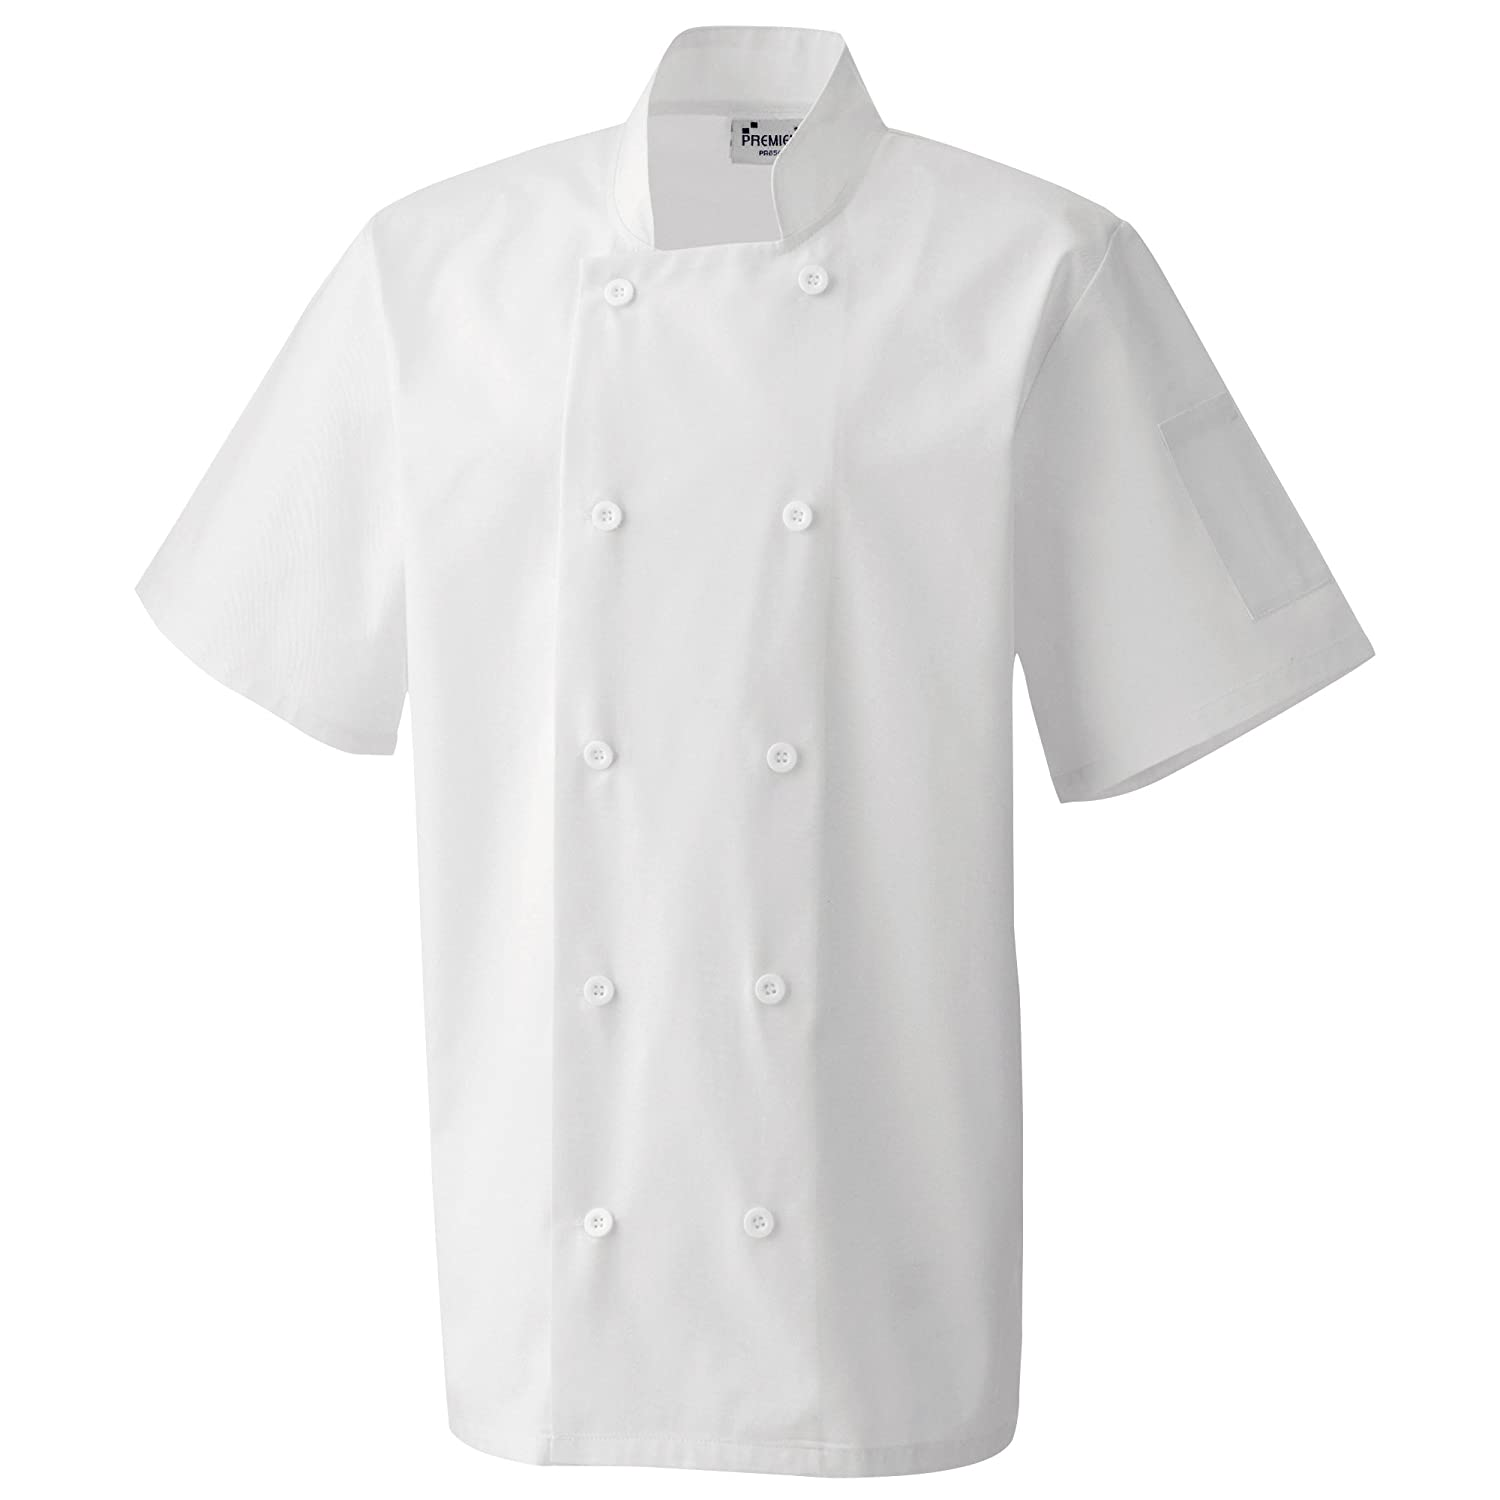 Premier Unisex Short Sleeved Chefs Jacket/Workwear